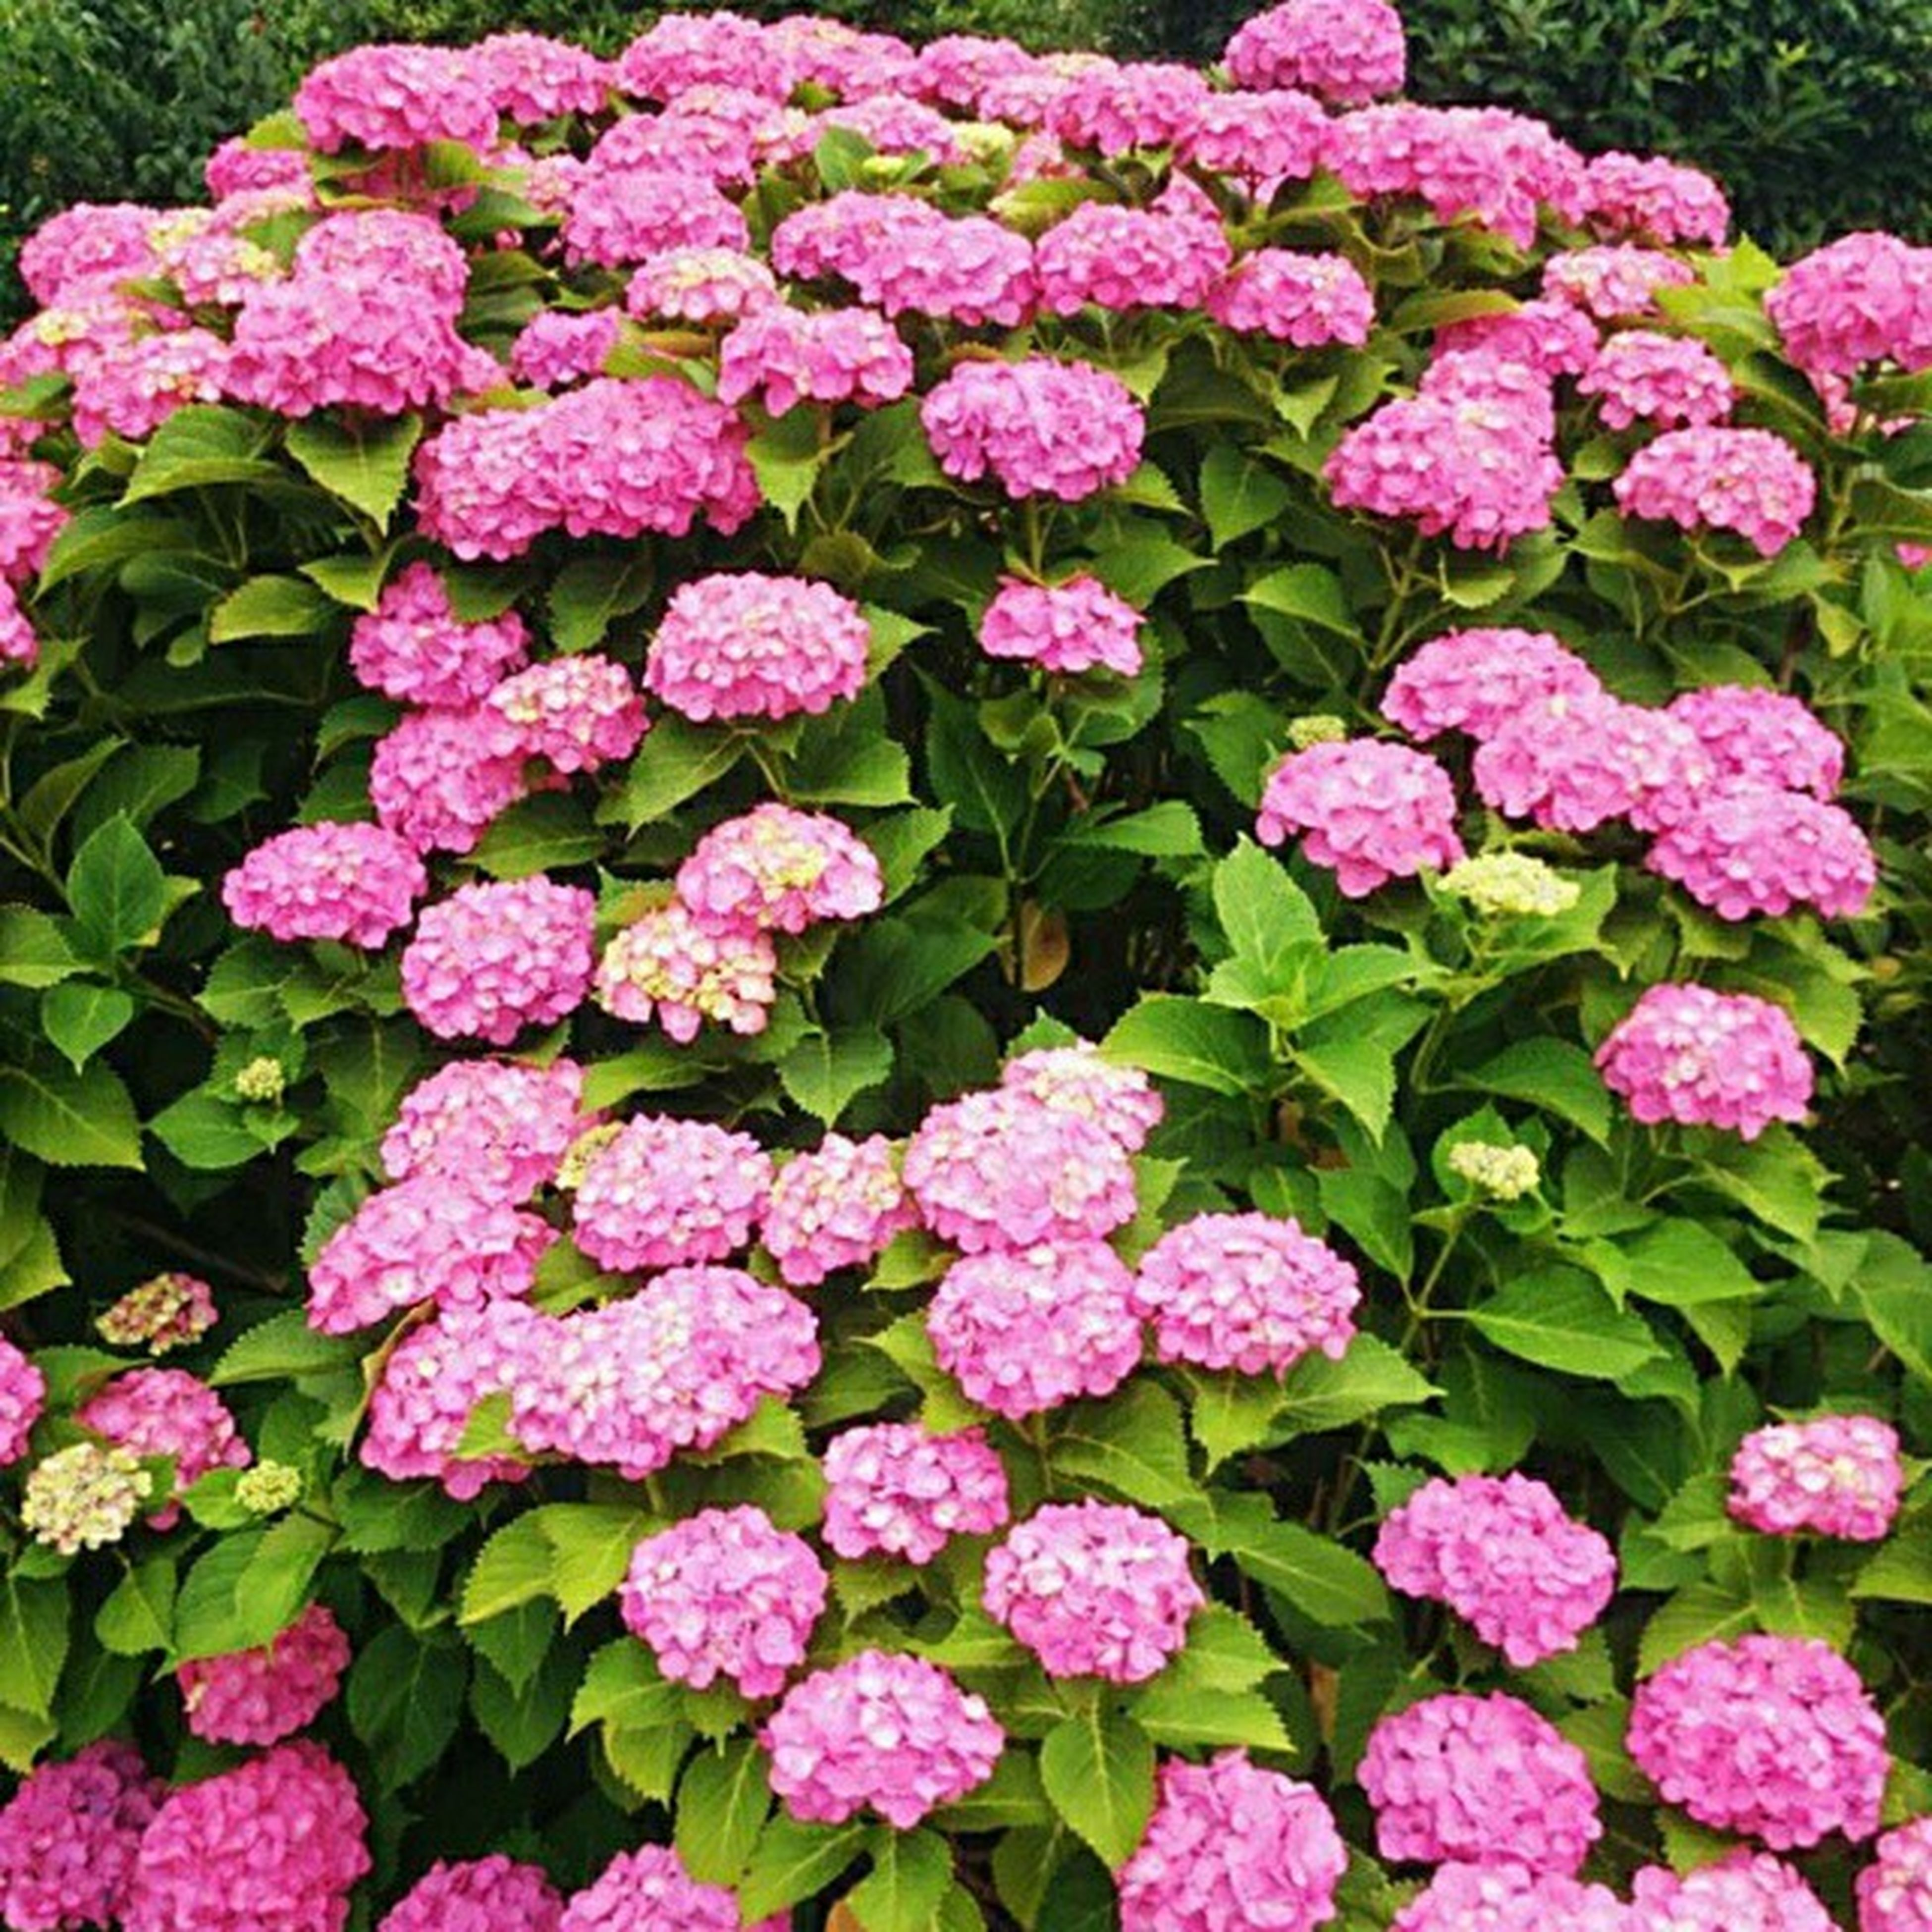 flower, freshness, fragility, petal, beauty in nature, growth, pink color, flower head, blooming, high angle view, plant, nature, purple, abundance, full frame, park - man made space, hydrangea, in bloom, backgrounds, leaf